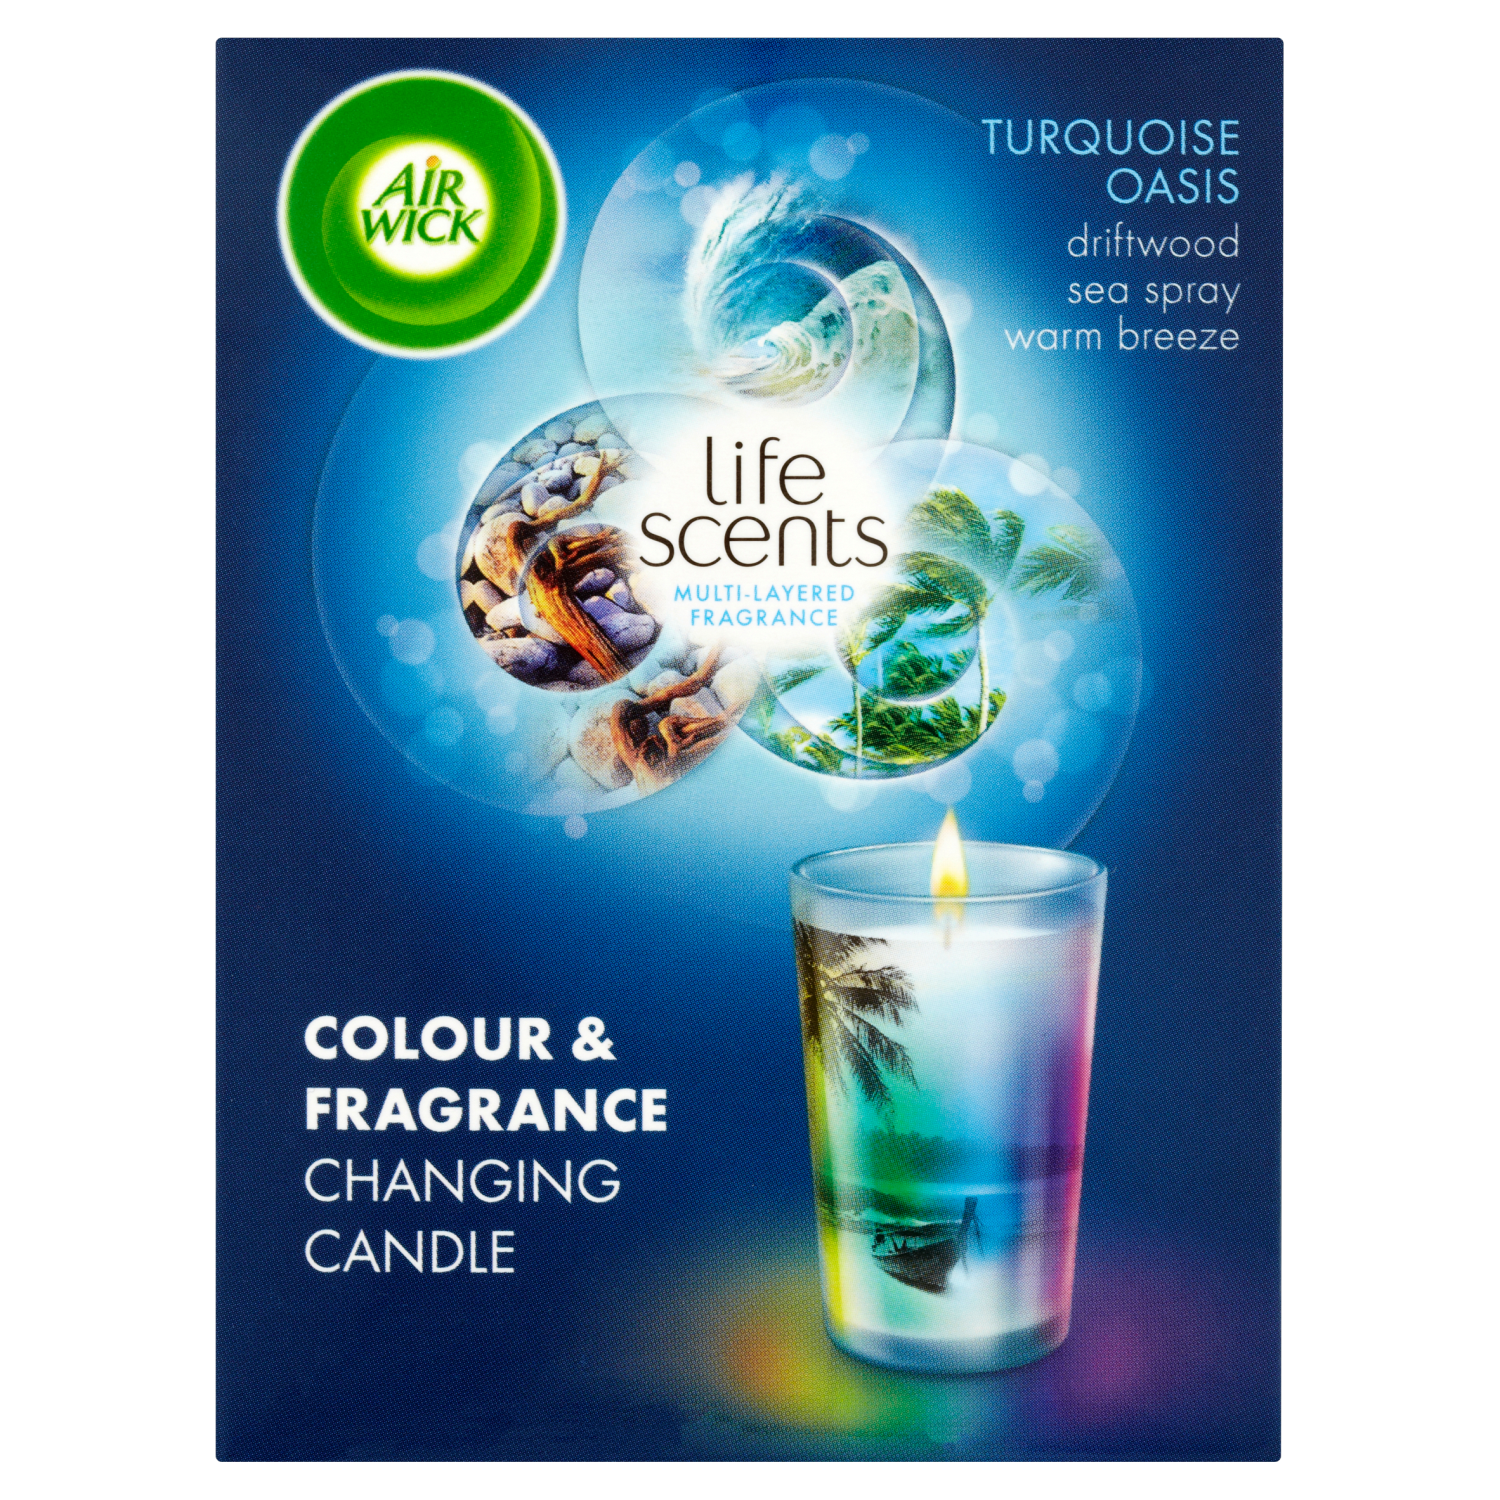 Air Wick Colour Change Candle Life Scents™ Turquoise Oasis